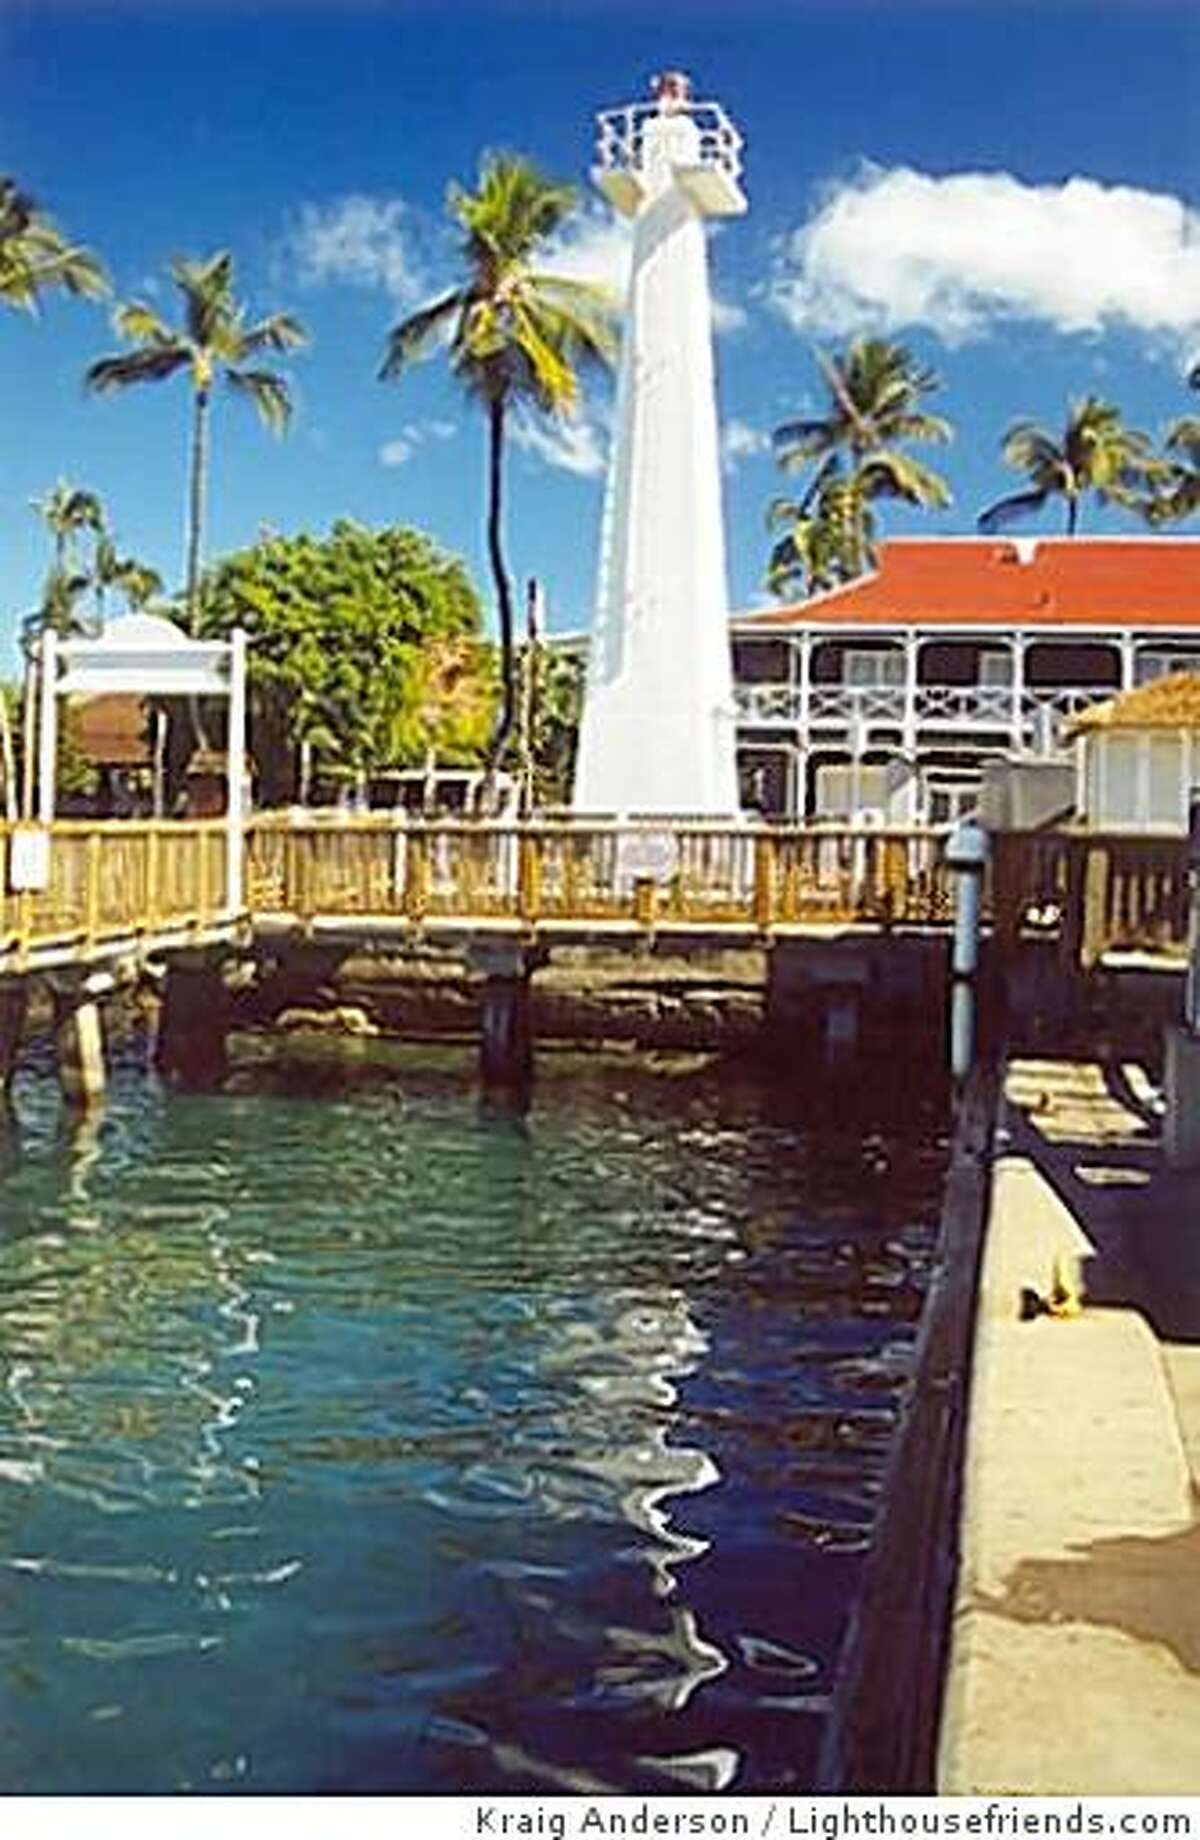 The Lahaina Lighthouse is Hawaii's first major beacon to become solar powered; a smaller light at McGregor Point, also on Maui, started the trend in 2008.